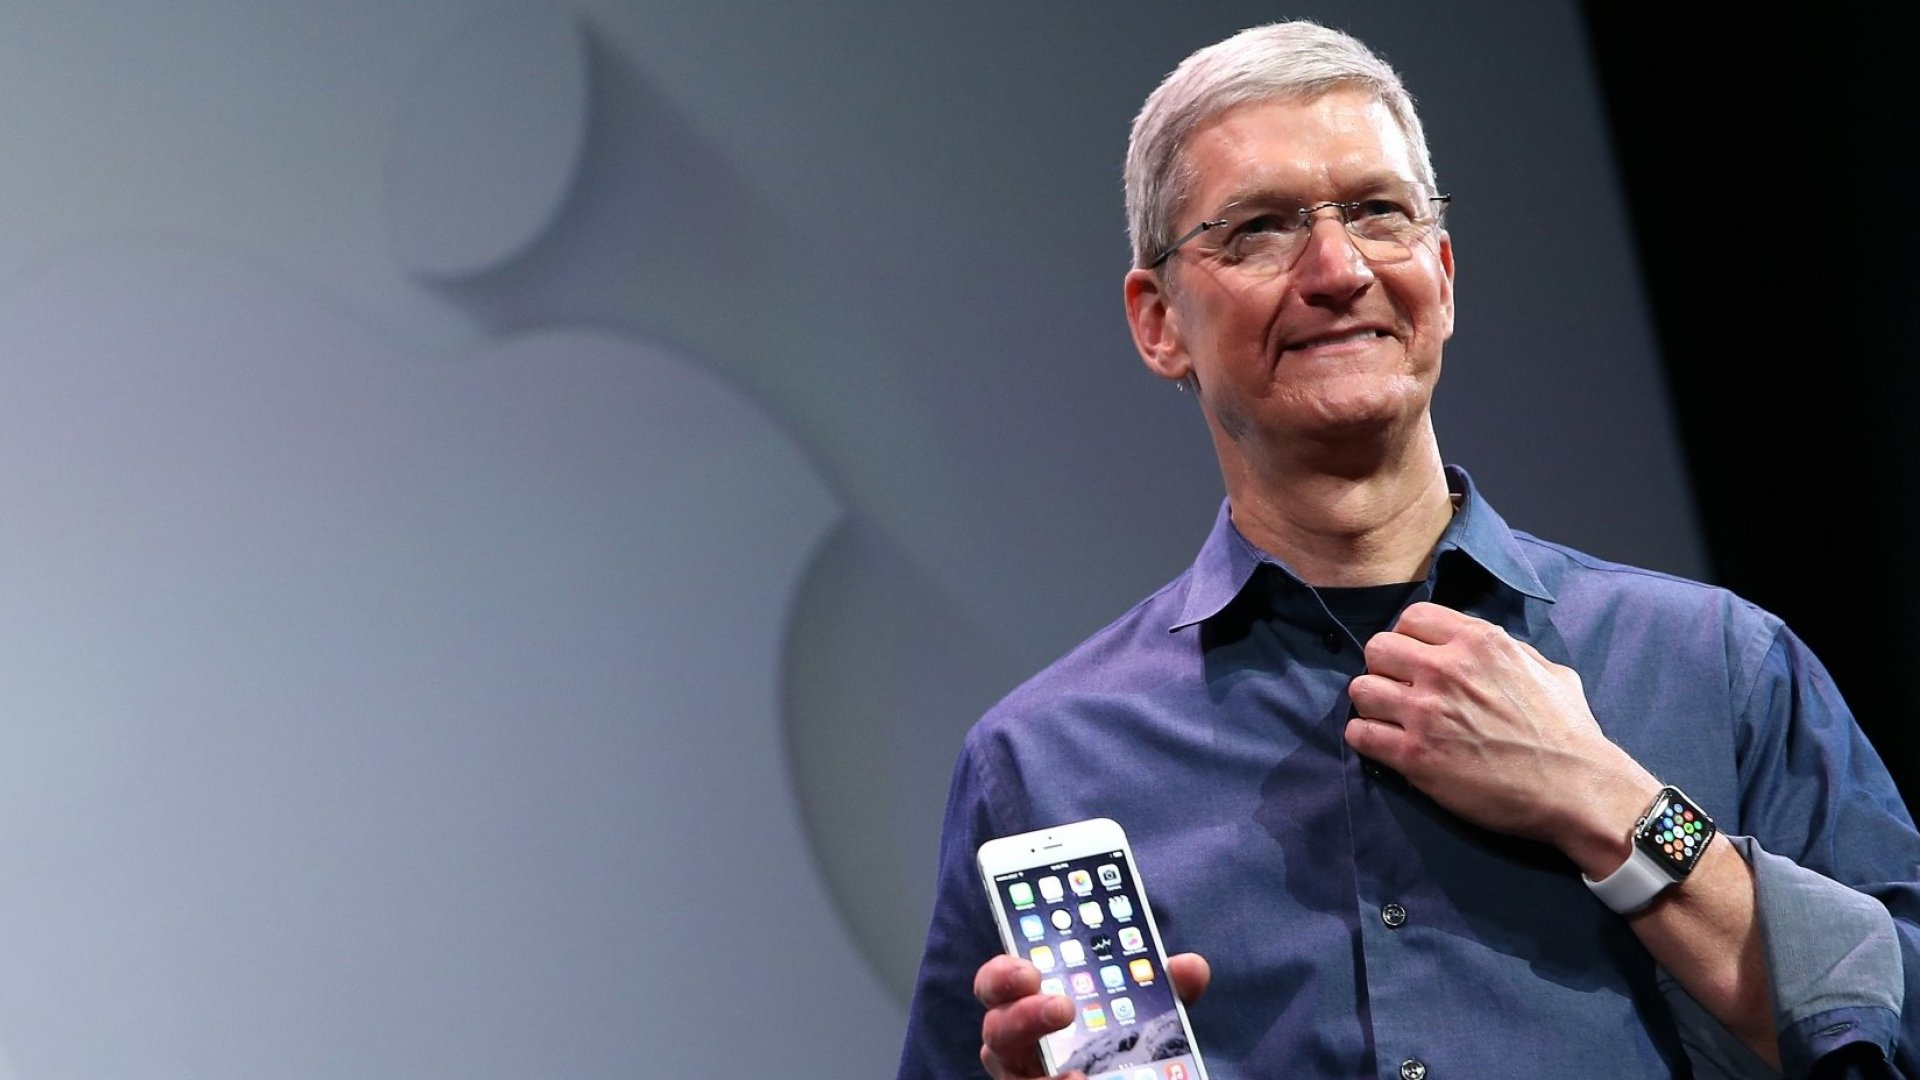 Apple's 3rd-Quarter Earnings Report Is Out Today After Markets Close. Here Are 6 Things You Should Watch Out For